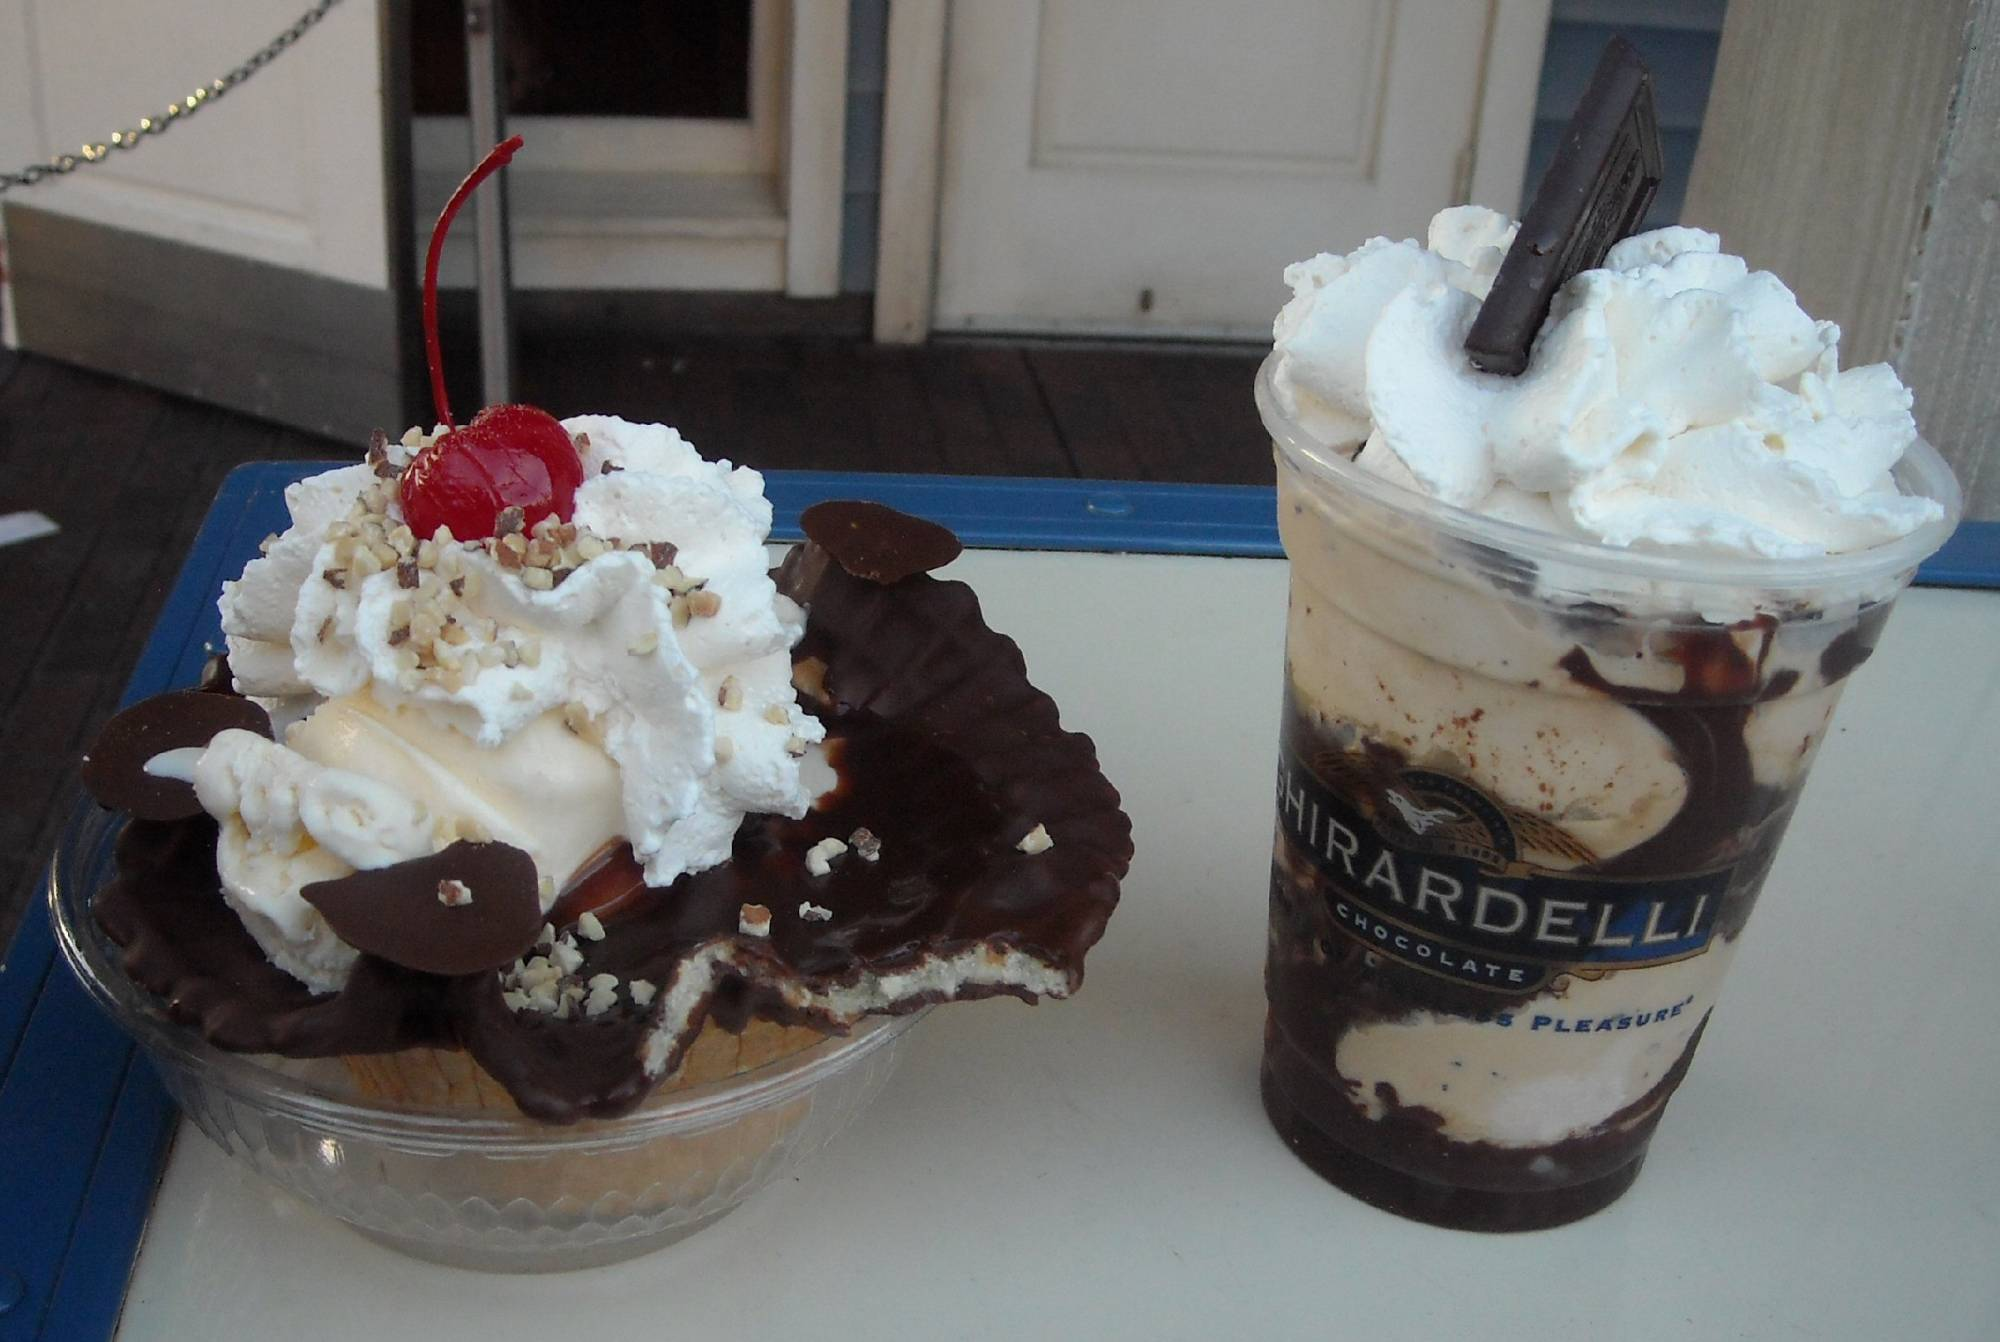 Indulge in a chocolate treat from the Ghirardelli Factory Store at Disney California Adventure | PassPorter.com